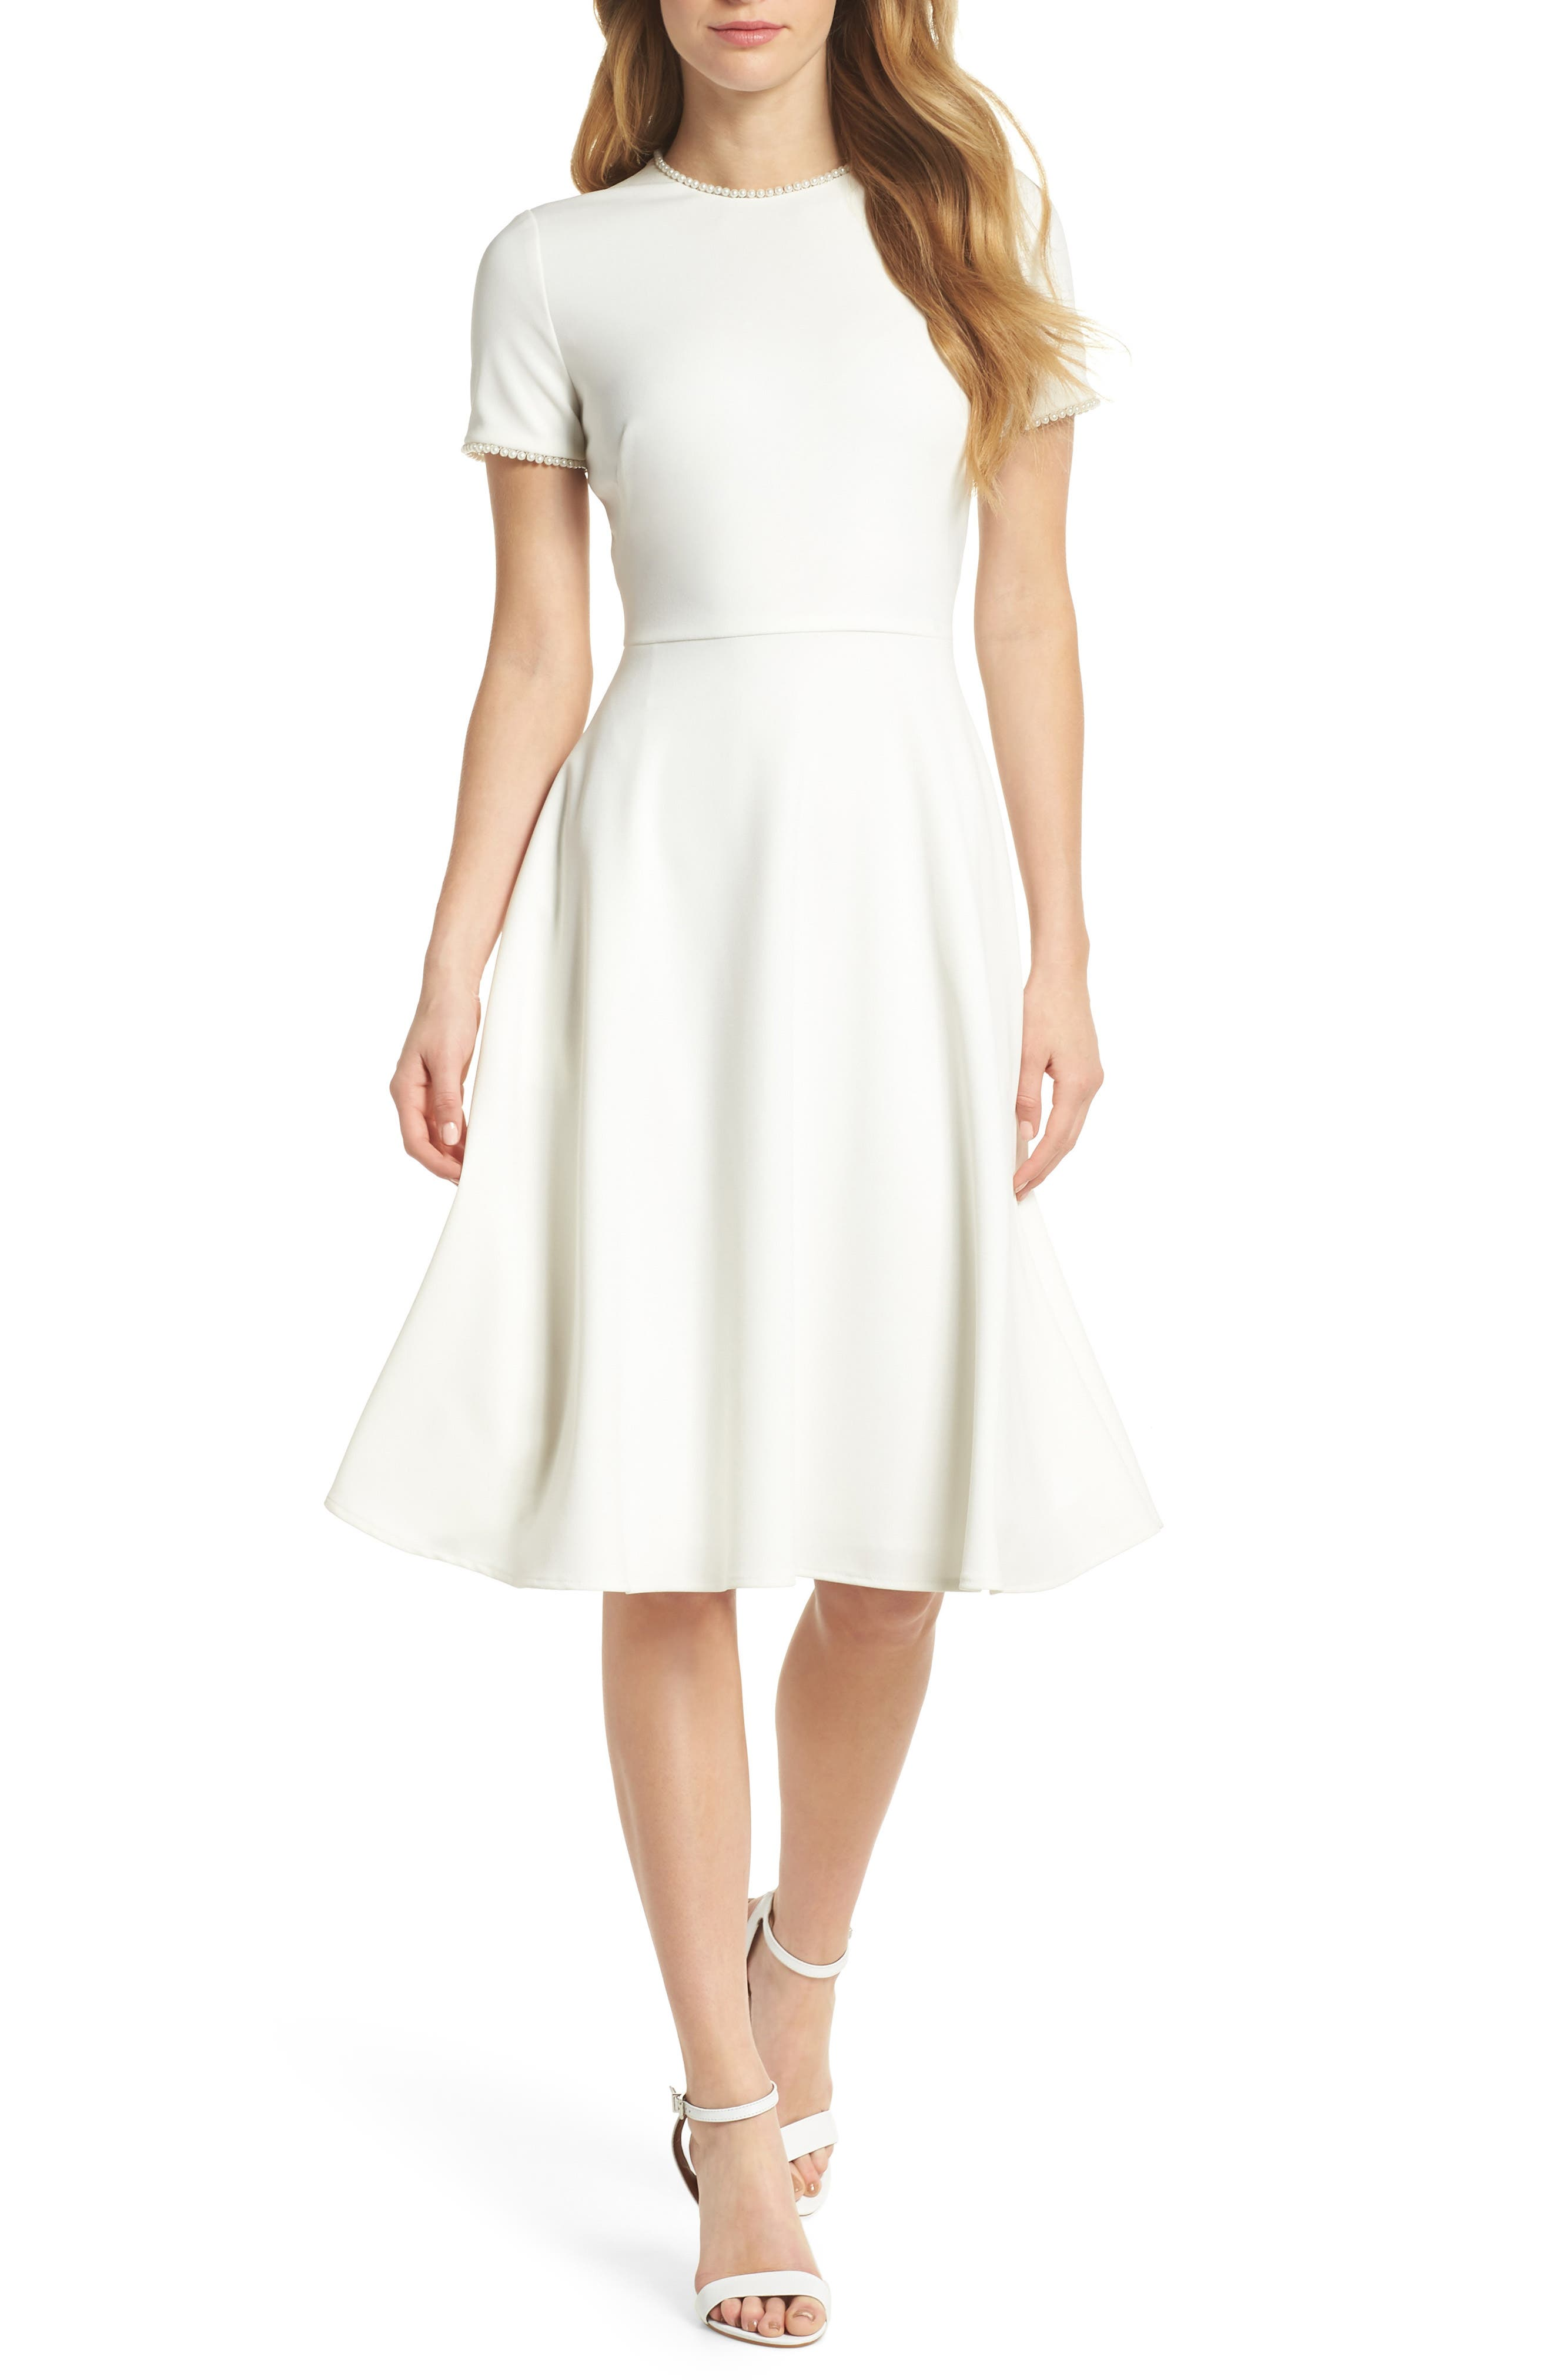 Womens cocktail party plus size dresses nordstrom ombrellifo Image collections